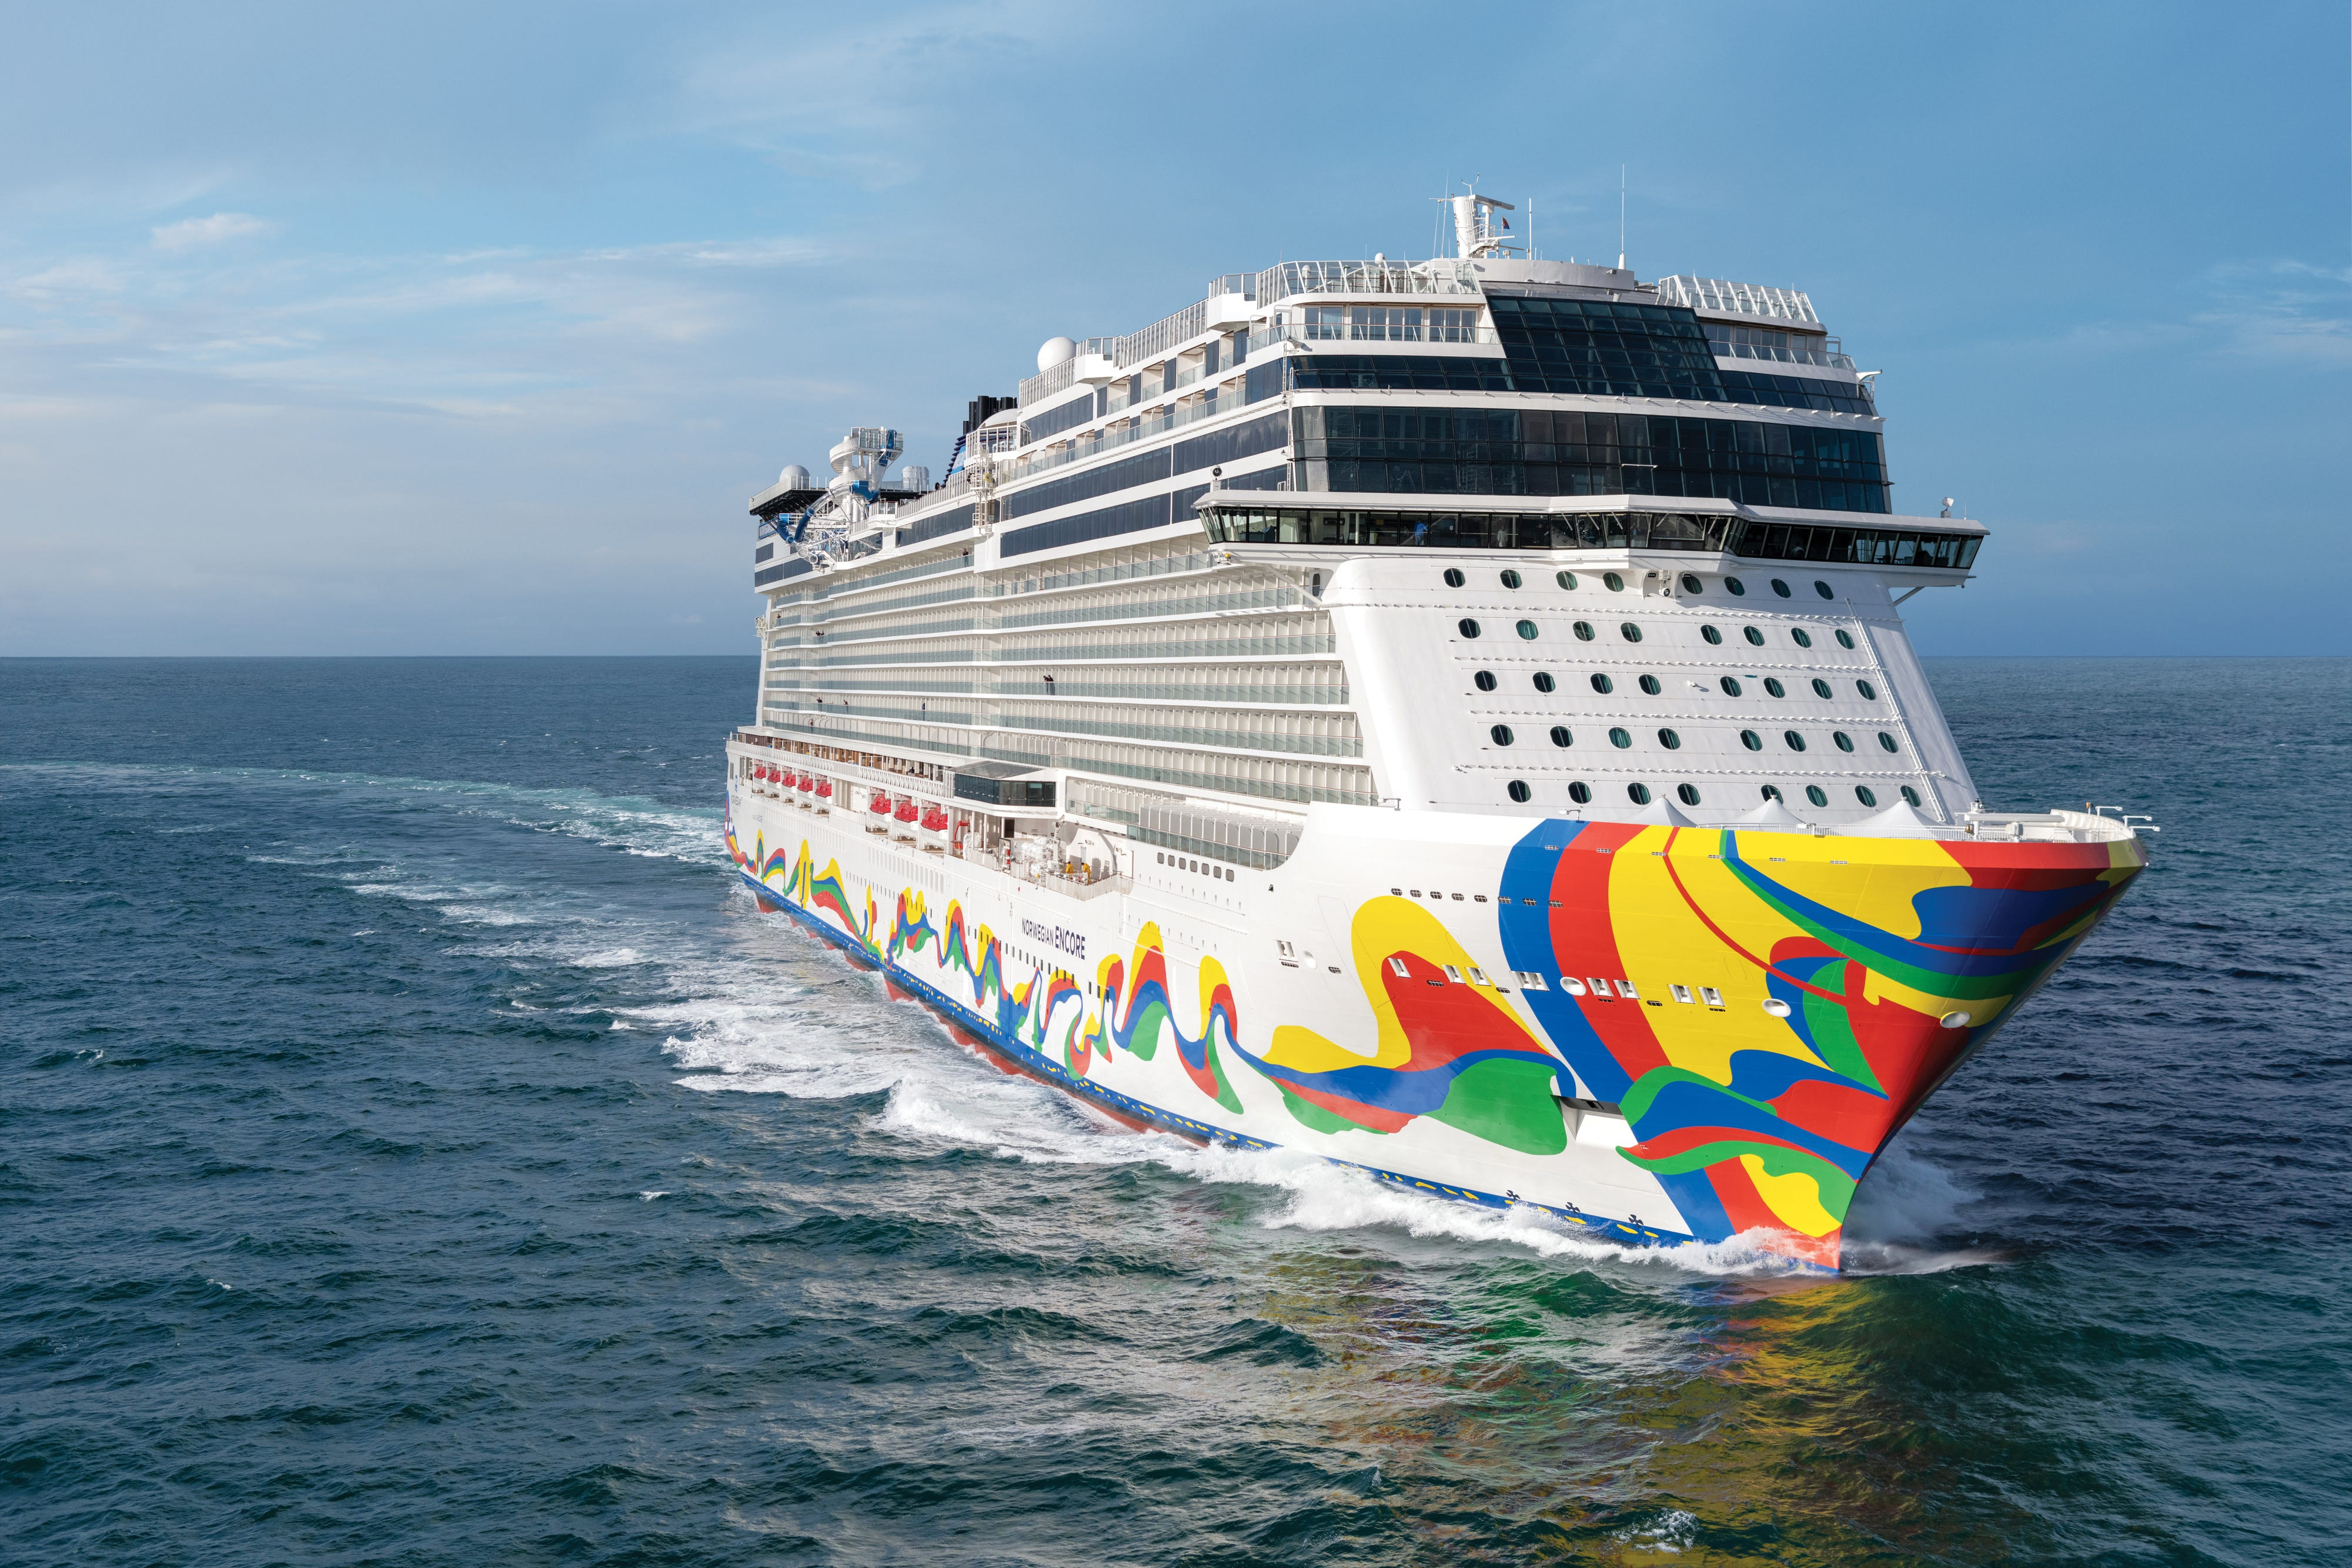 New Norwegian Encore cruise ship sets sail as Norwegian Cruise Line welcomes new leader